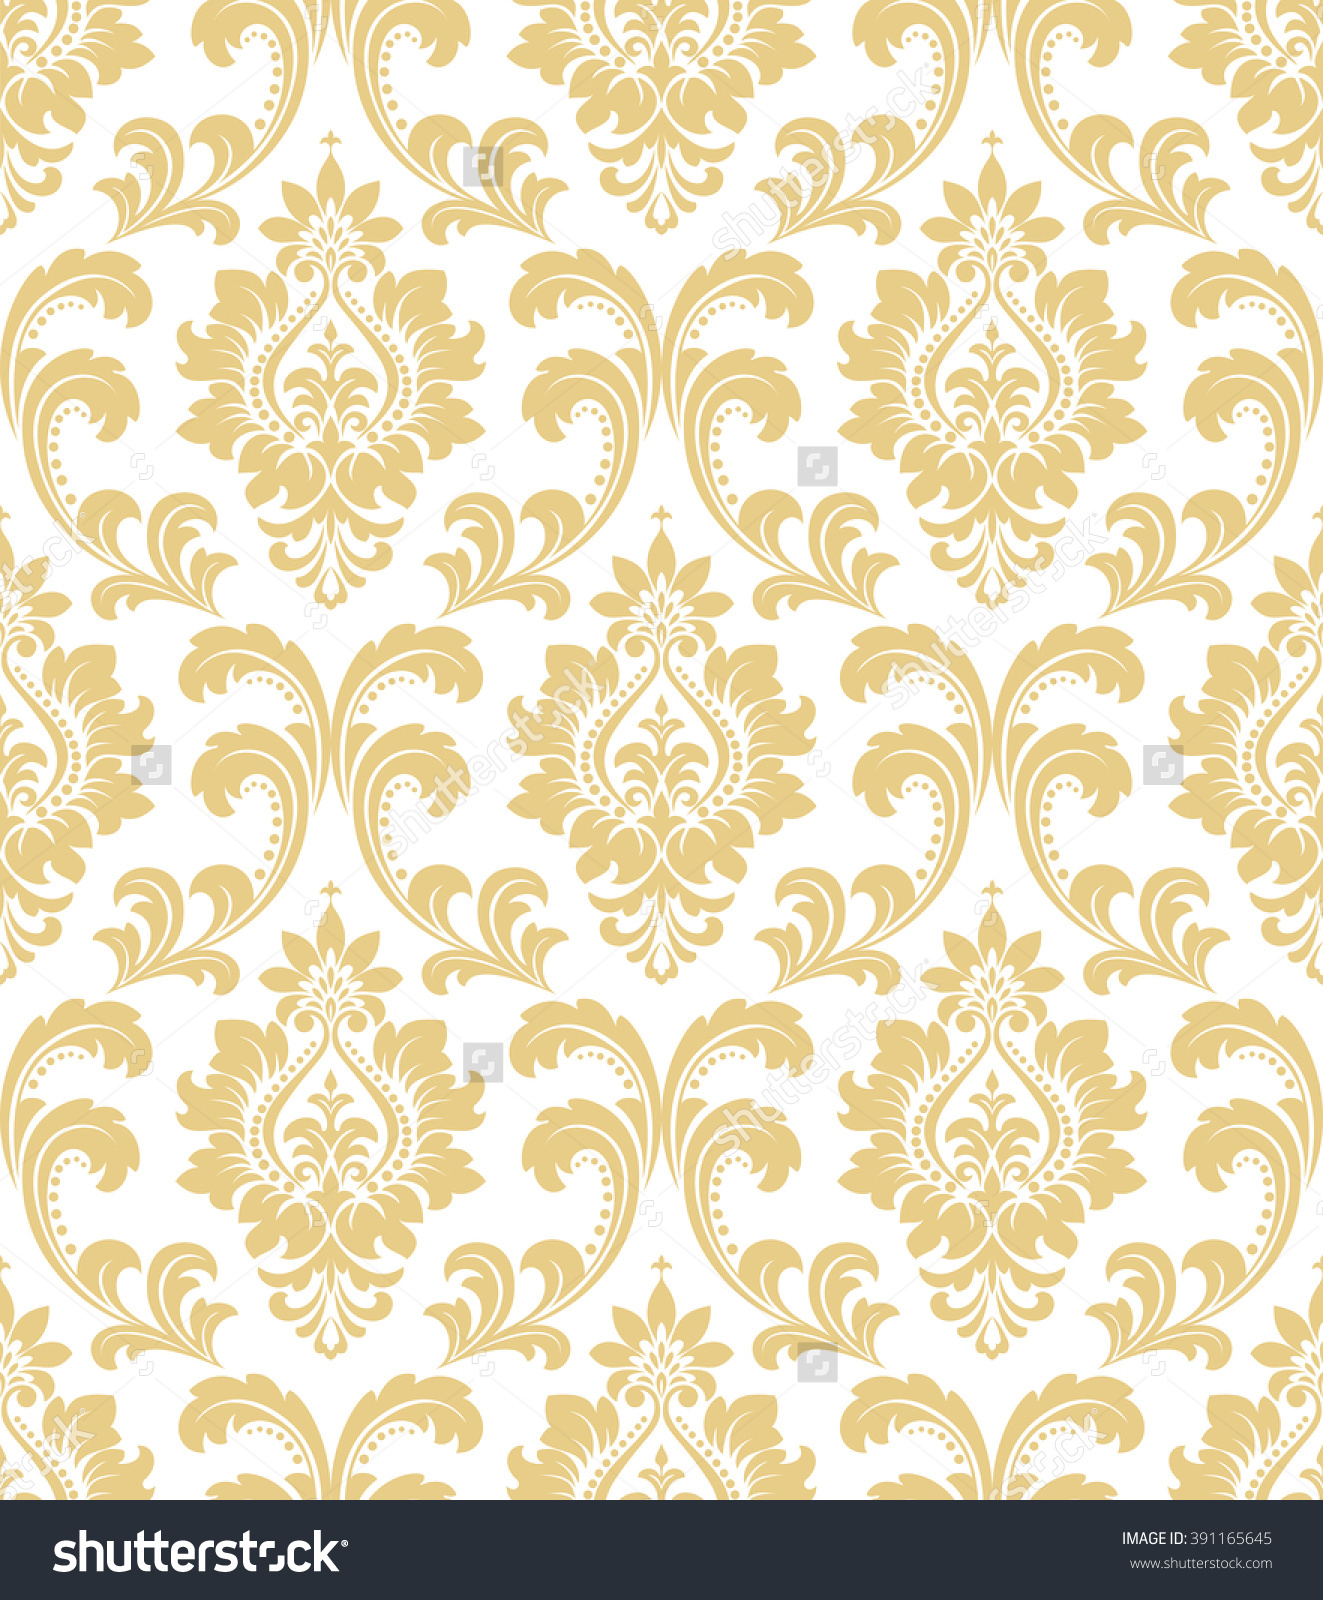 Download White And Gold Damask Wallpaper Gallery